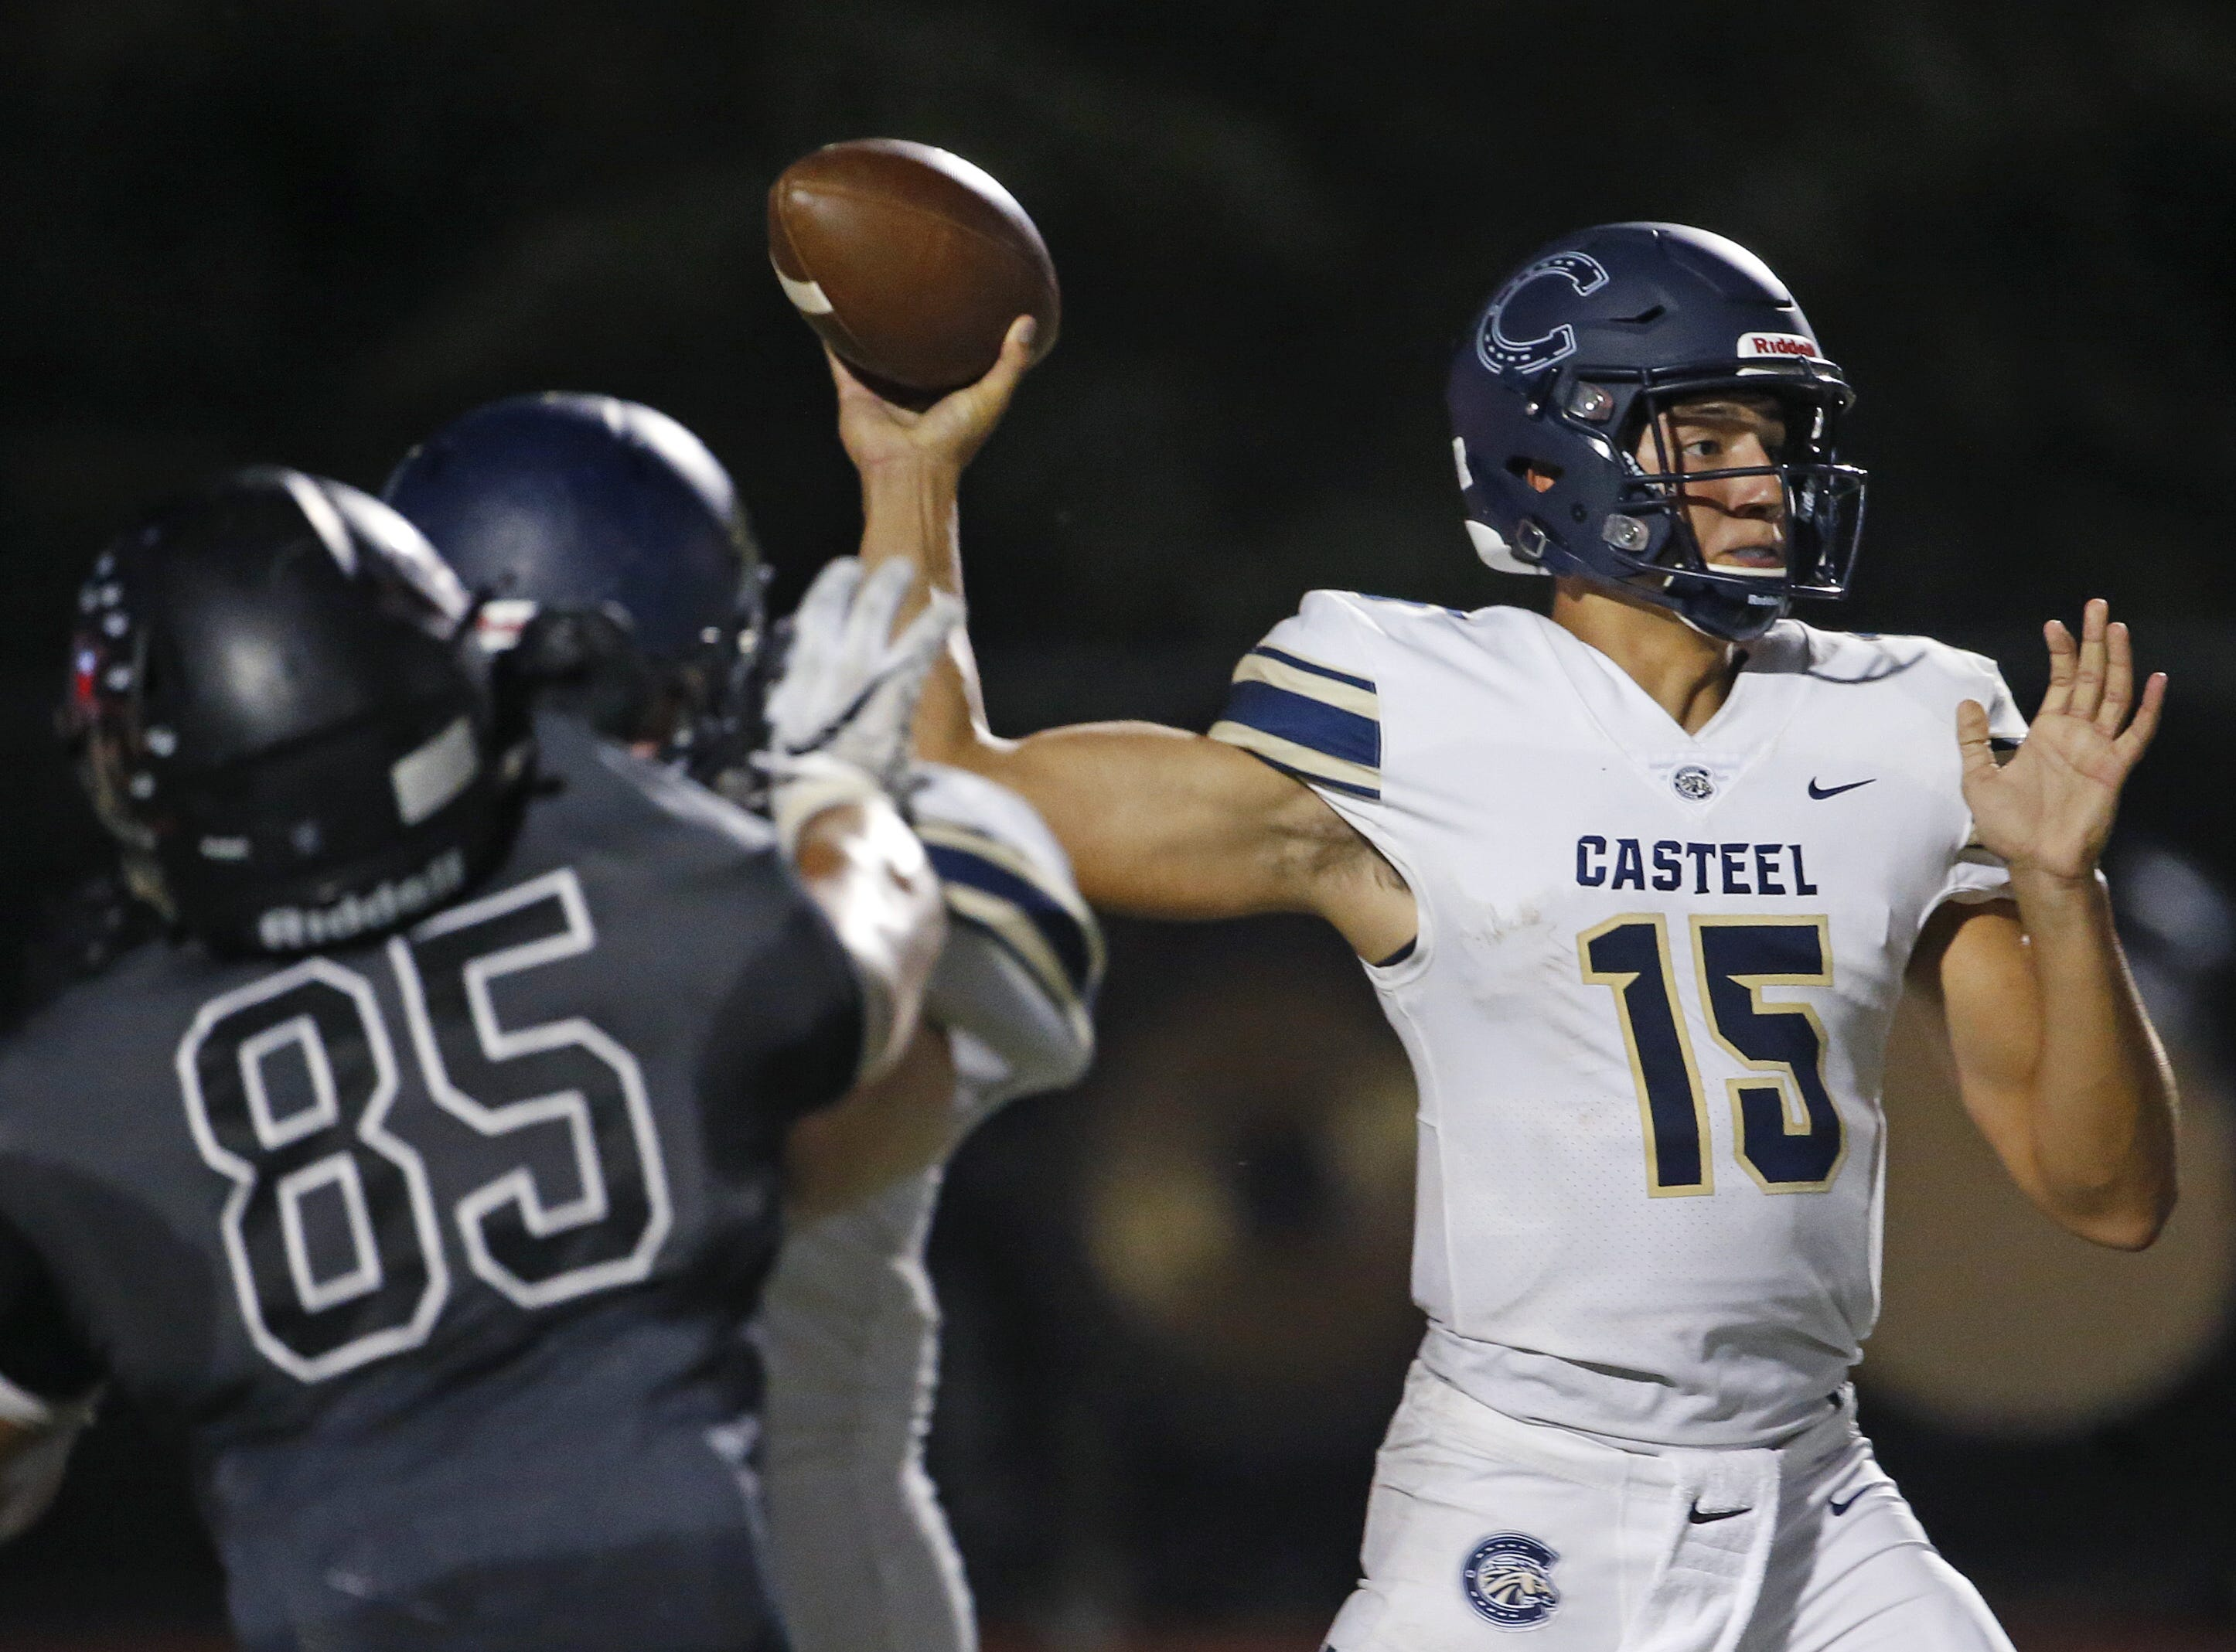 Casteel's Gunner Cruz (15) throws a pass against Williams Field at Williams Field High School in Gilbert, Ariz. on Sept. 21, 2018.  #azhsfb